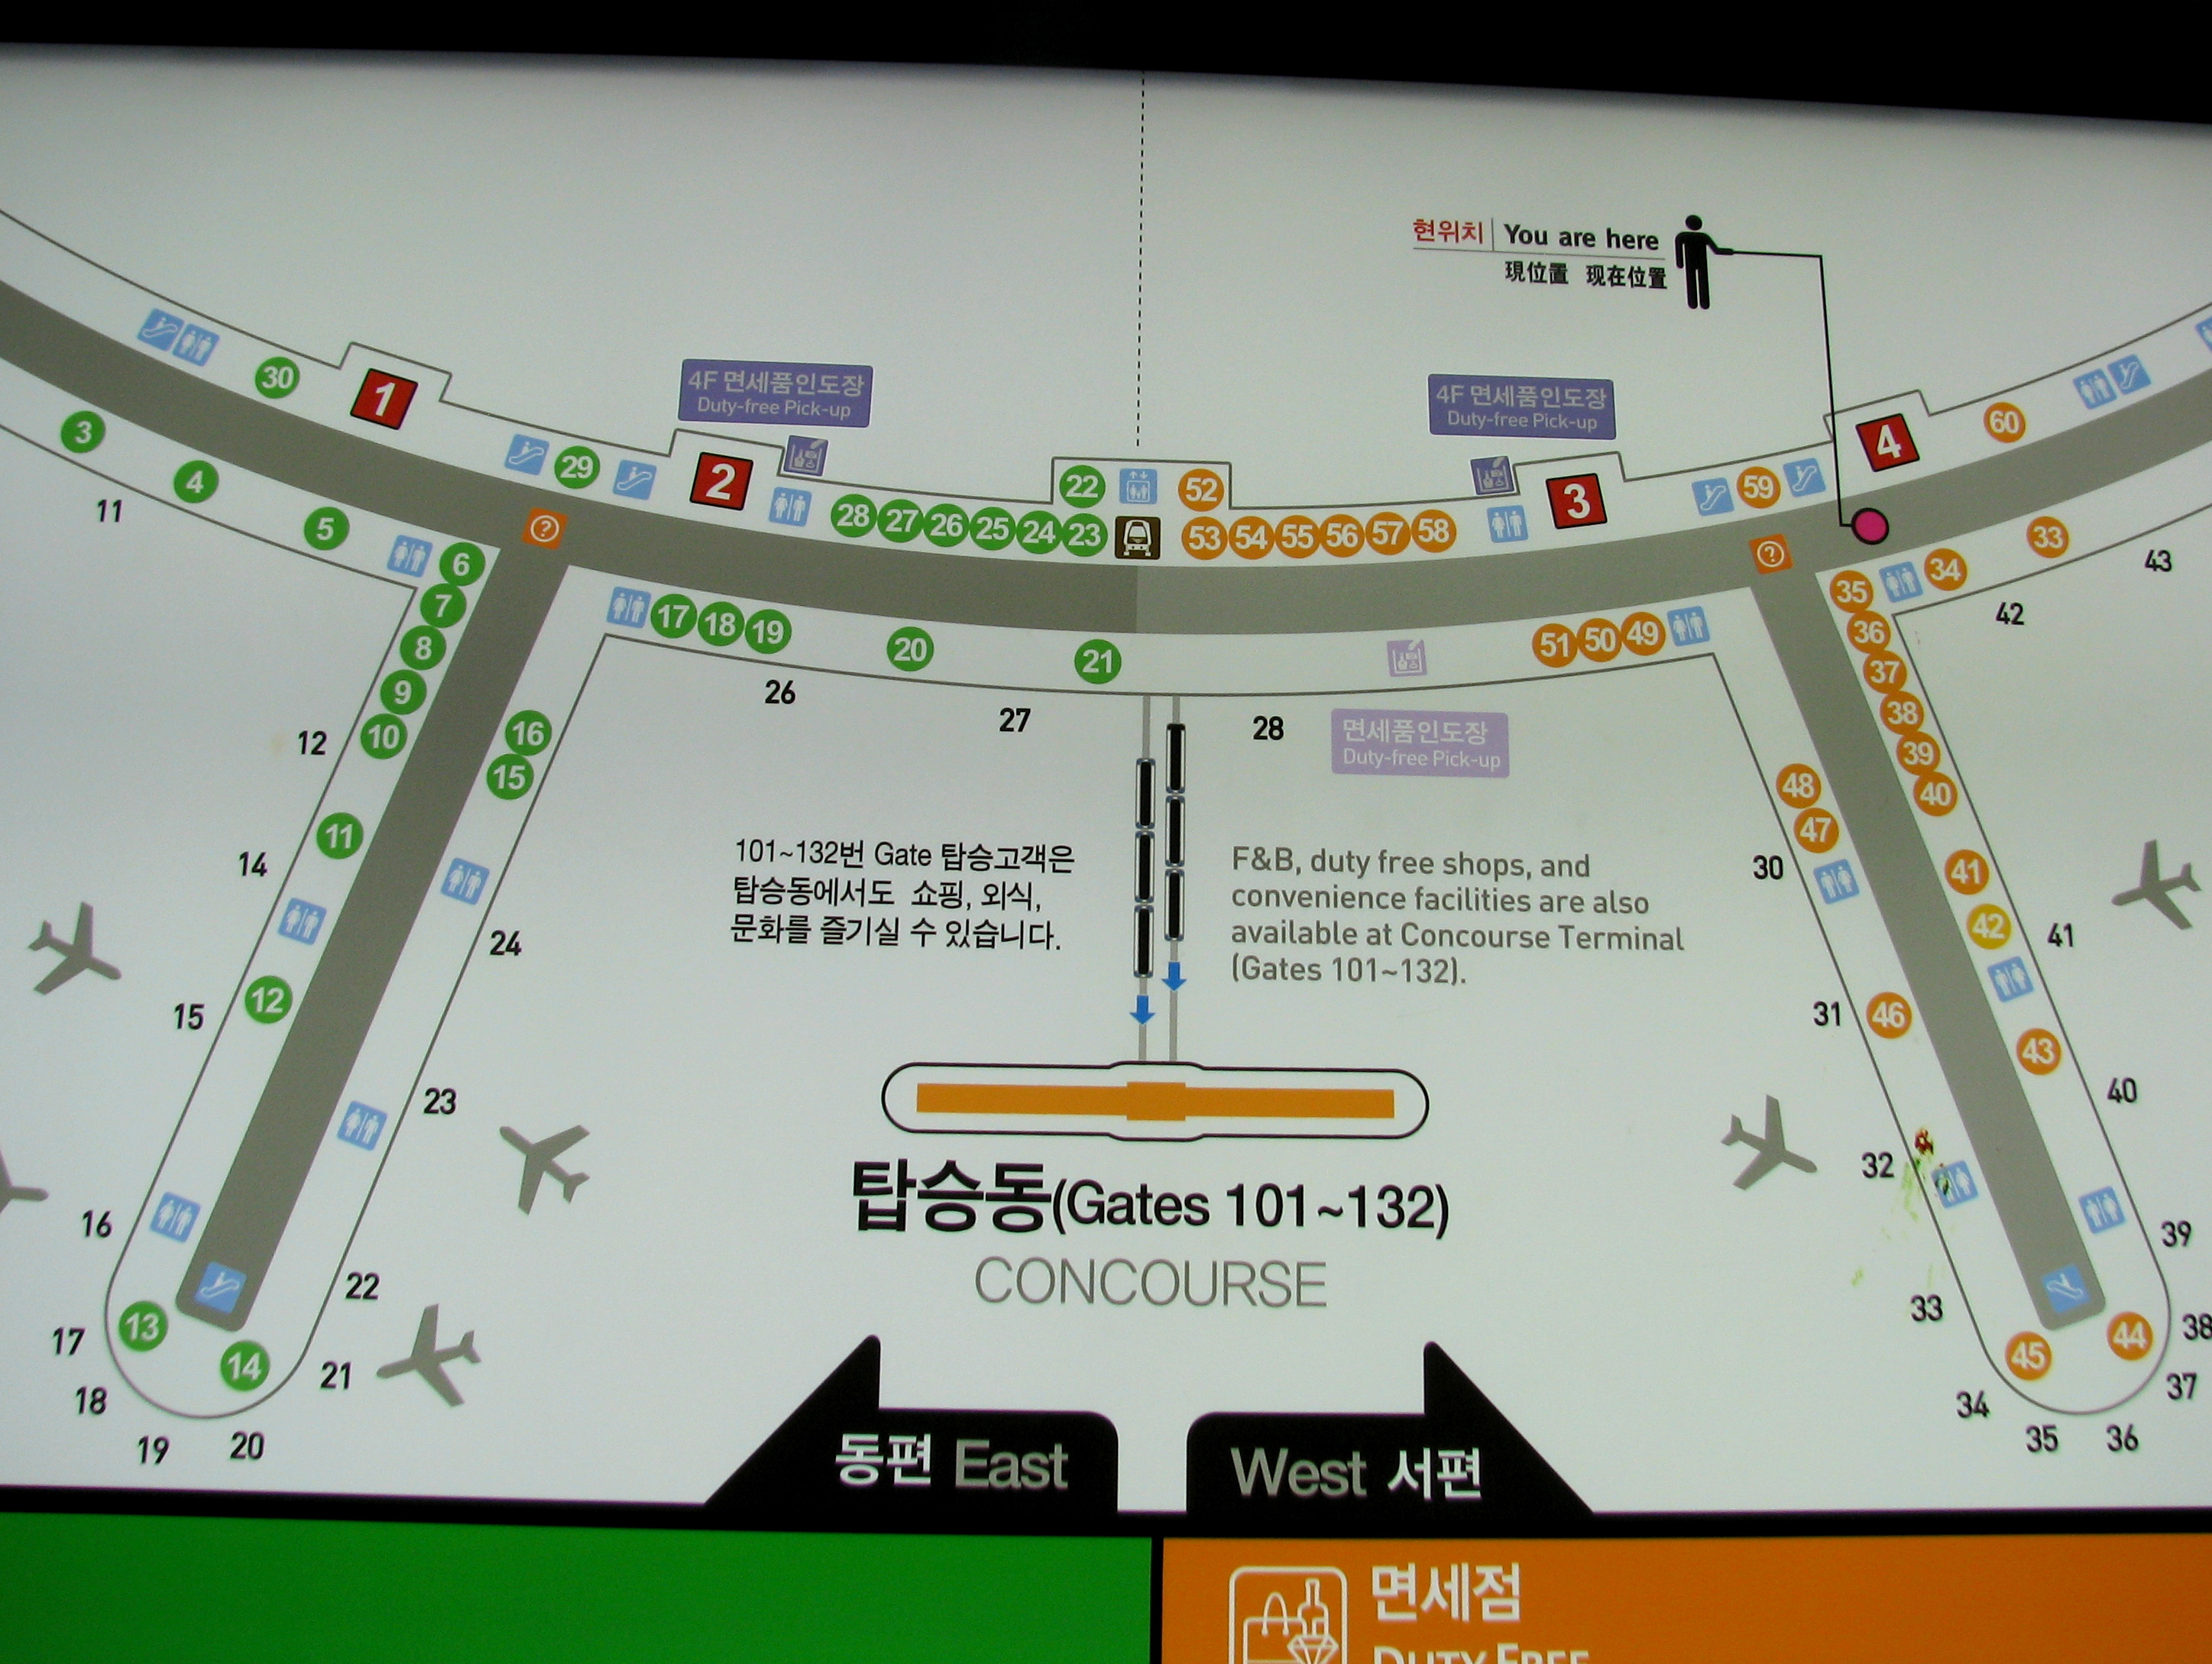 Incheon International Airport Terminal Map Incheon SK Image